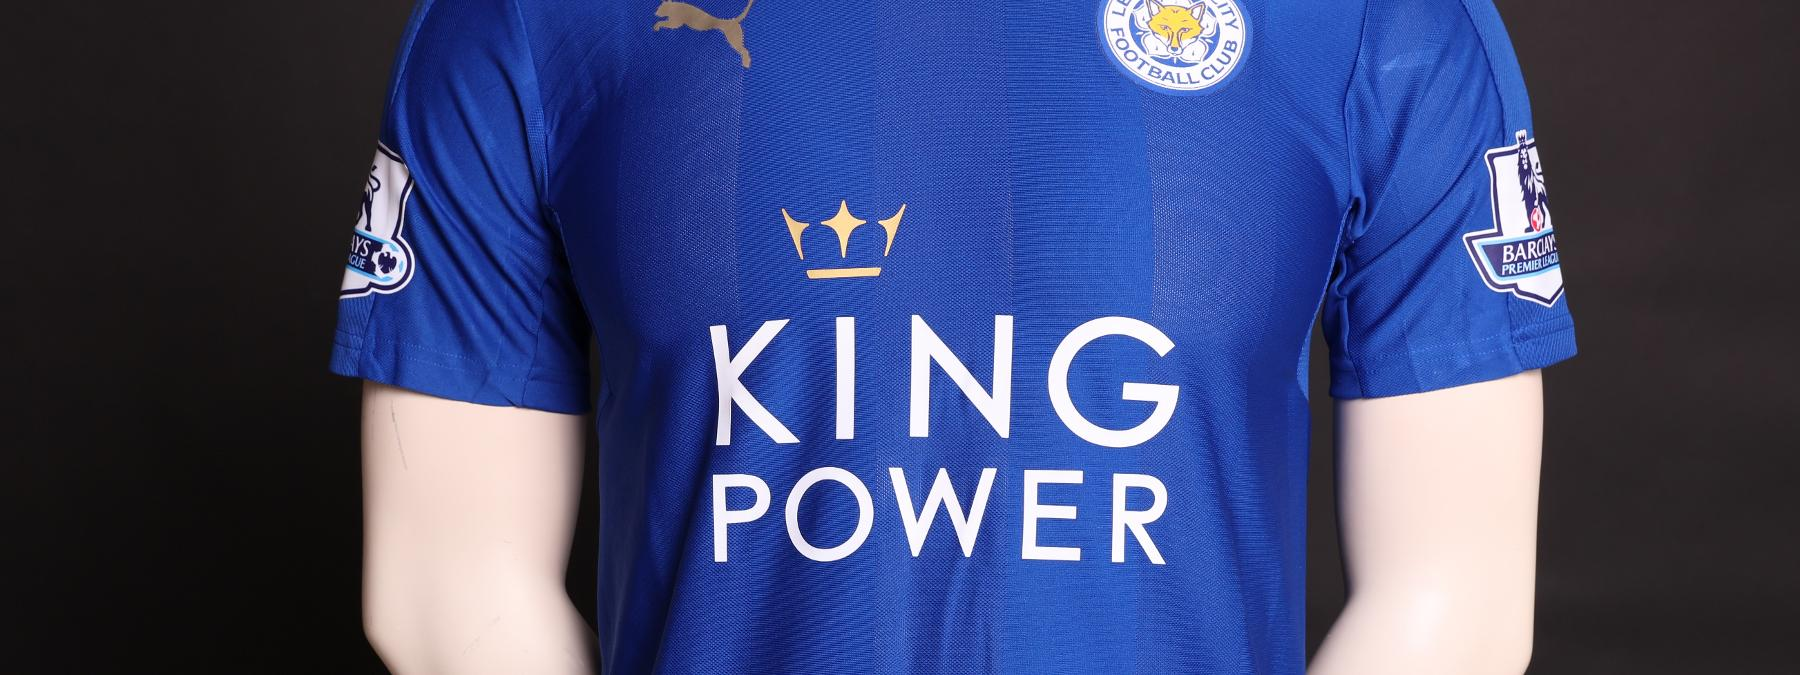 5e0d0905b4e Leicester City Kits Through The Years: Part Two